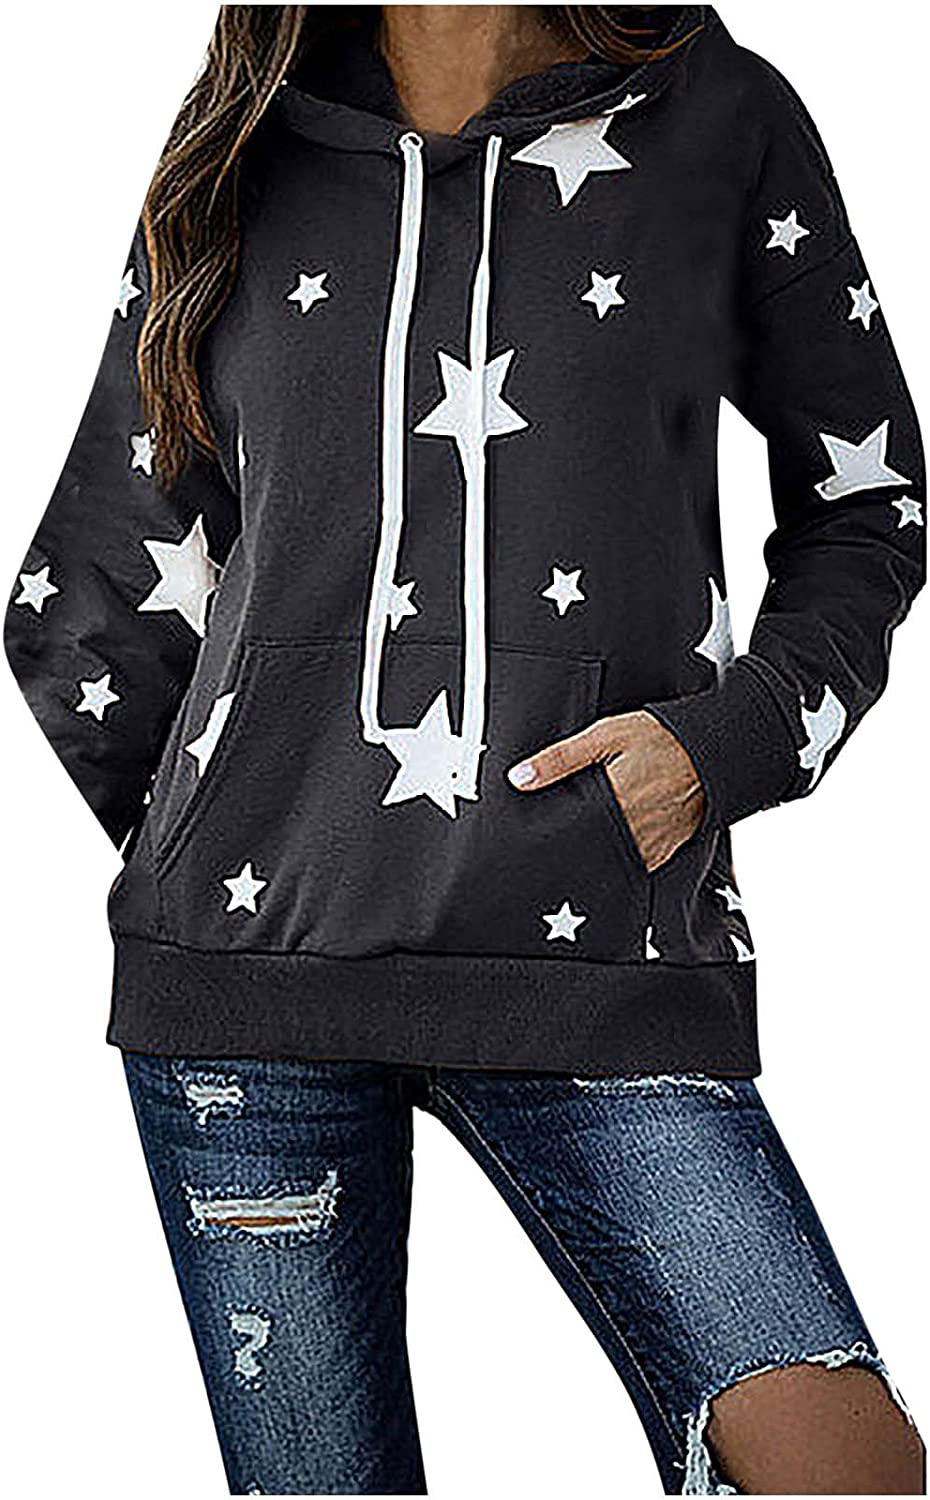 Five-Pointed Star Printing Long Sleeve Hoodie for Women Casual Loose Sweatshirt tops With Pockets